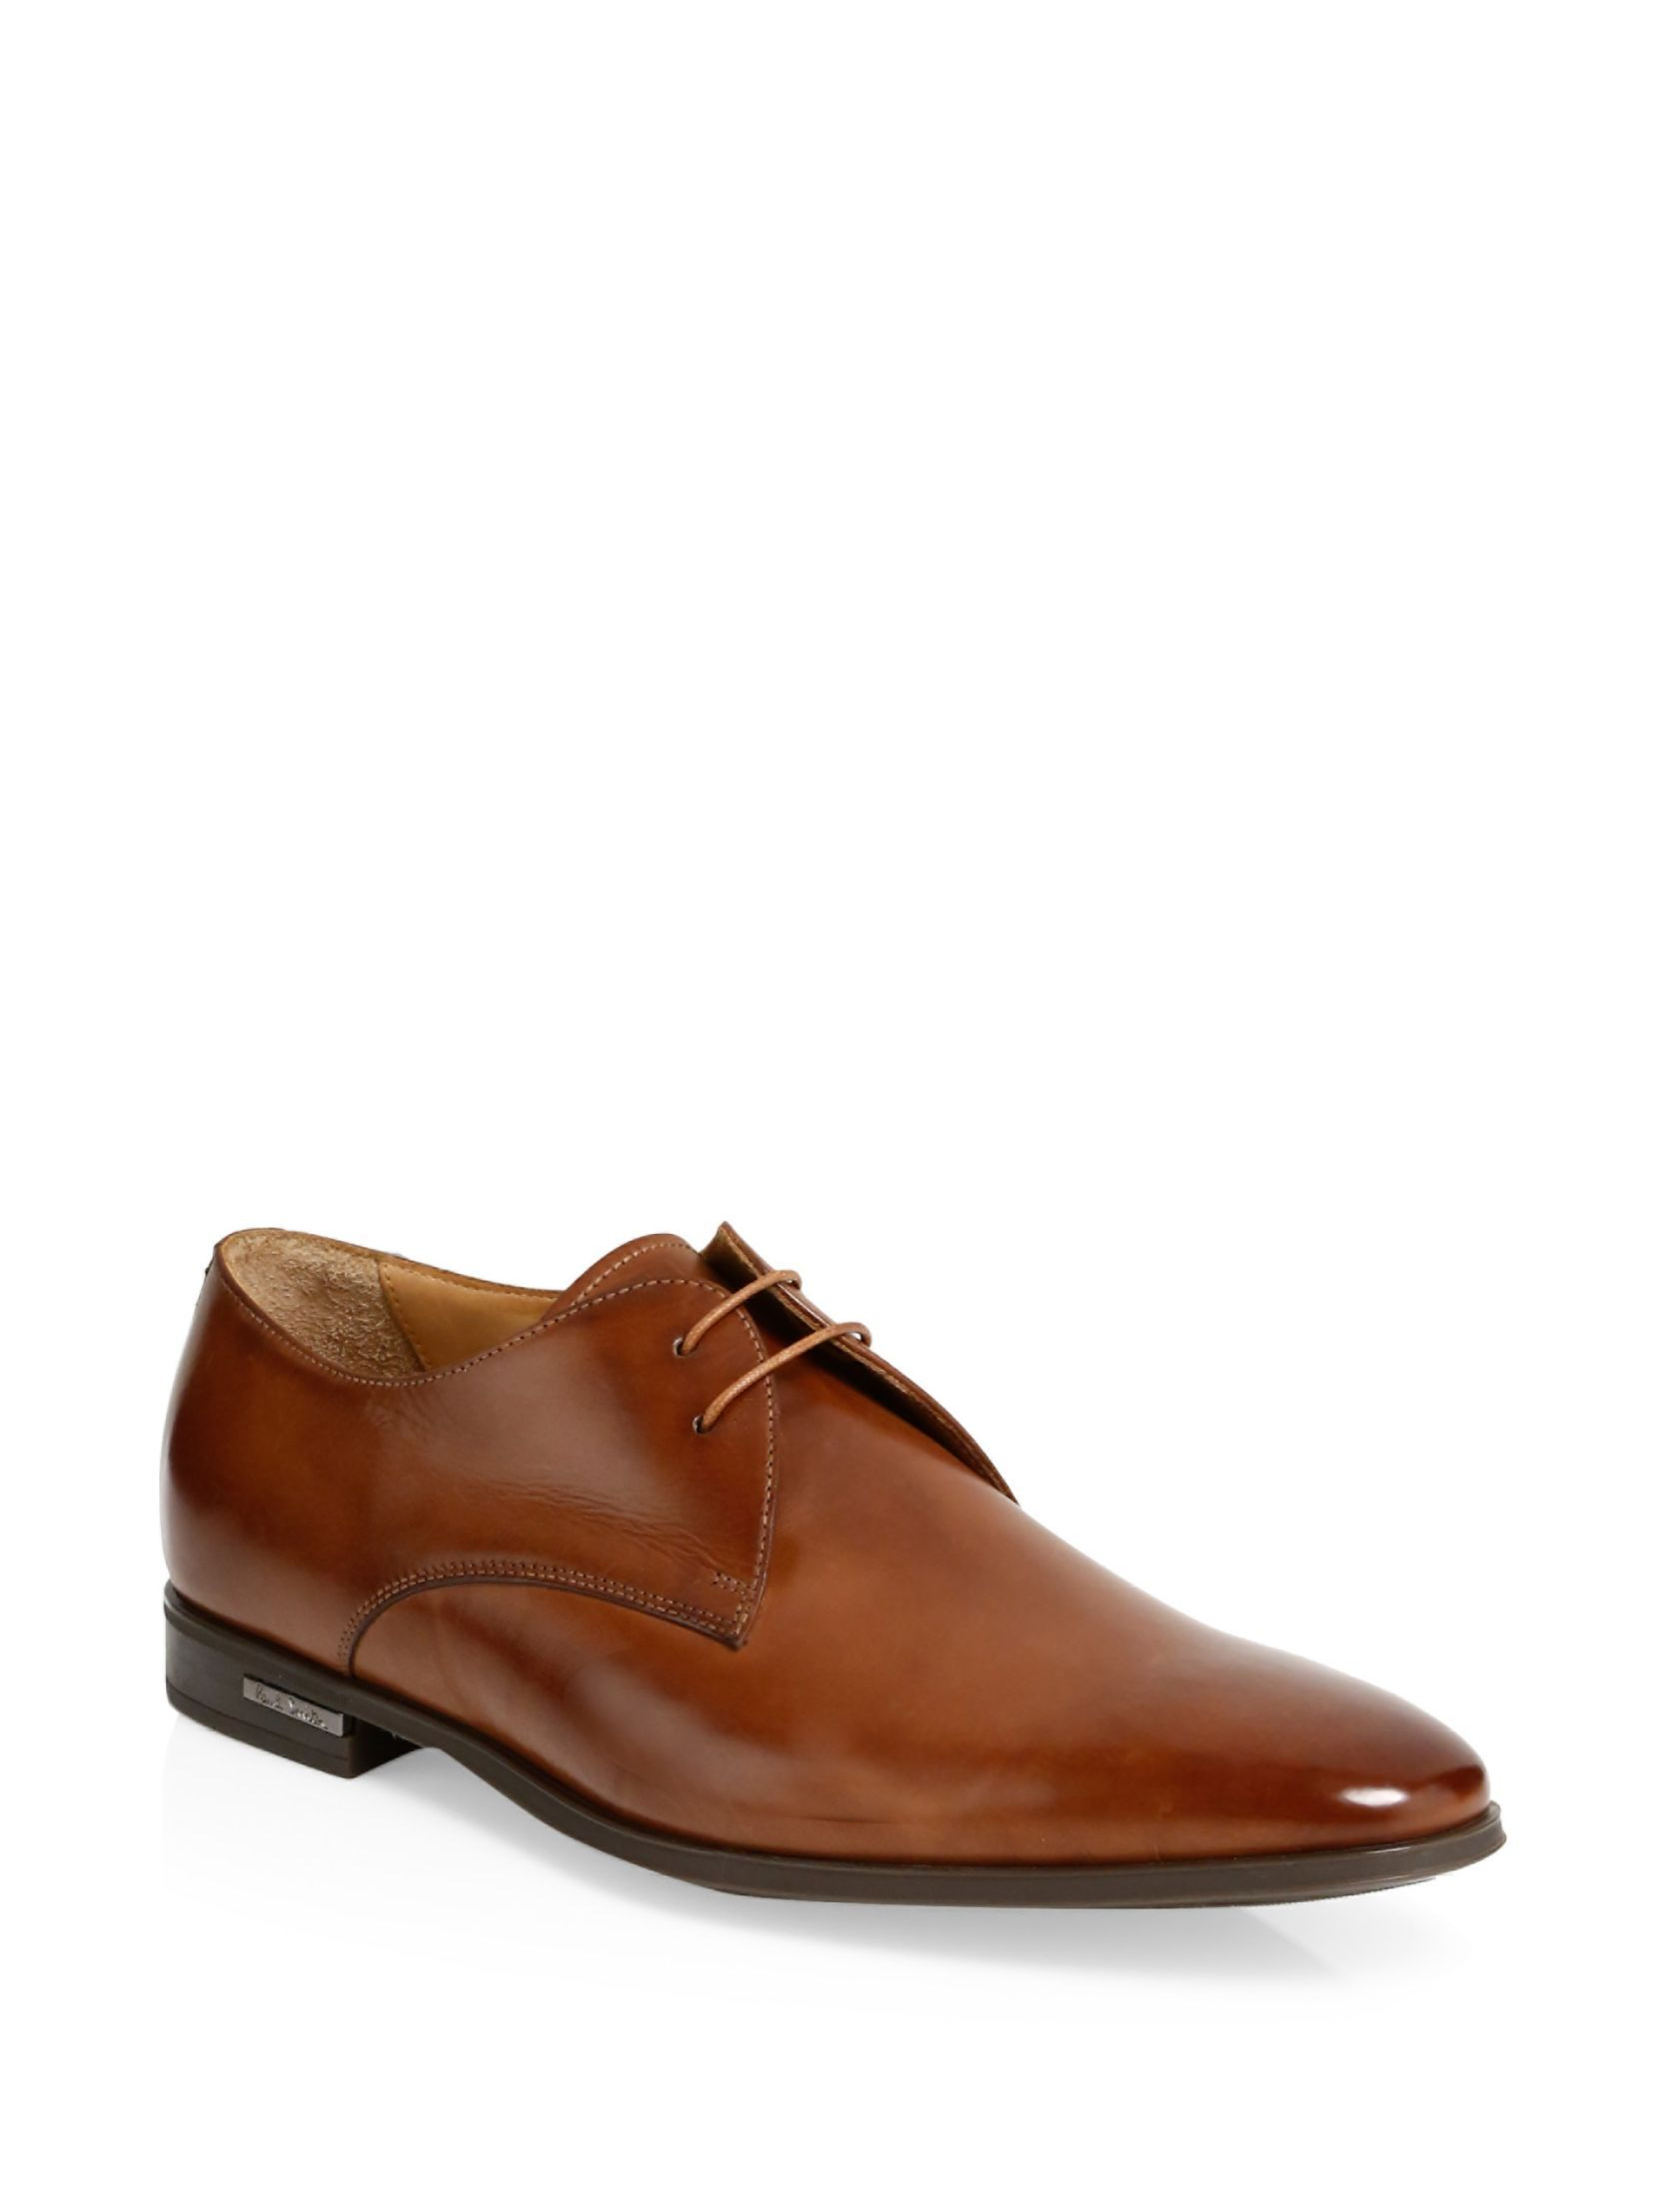 Paul SmithConey Leather Dress Shoes